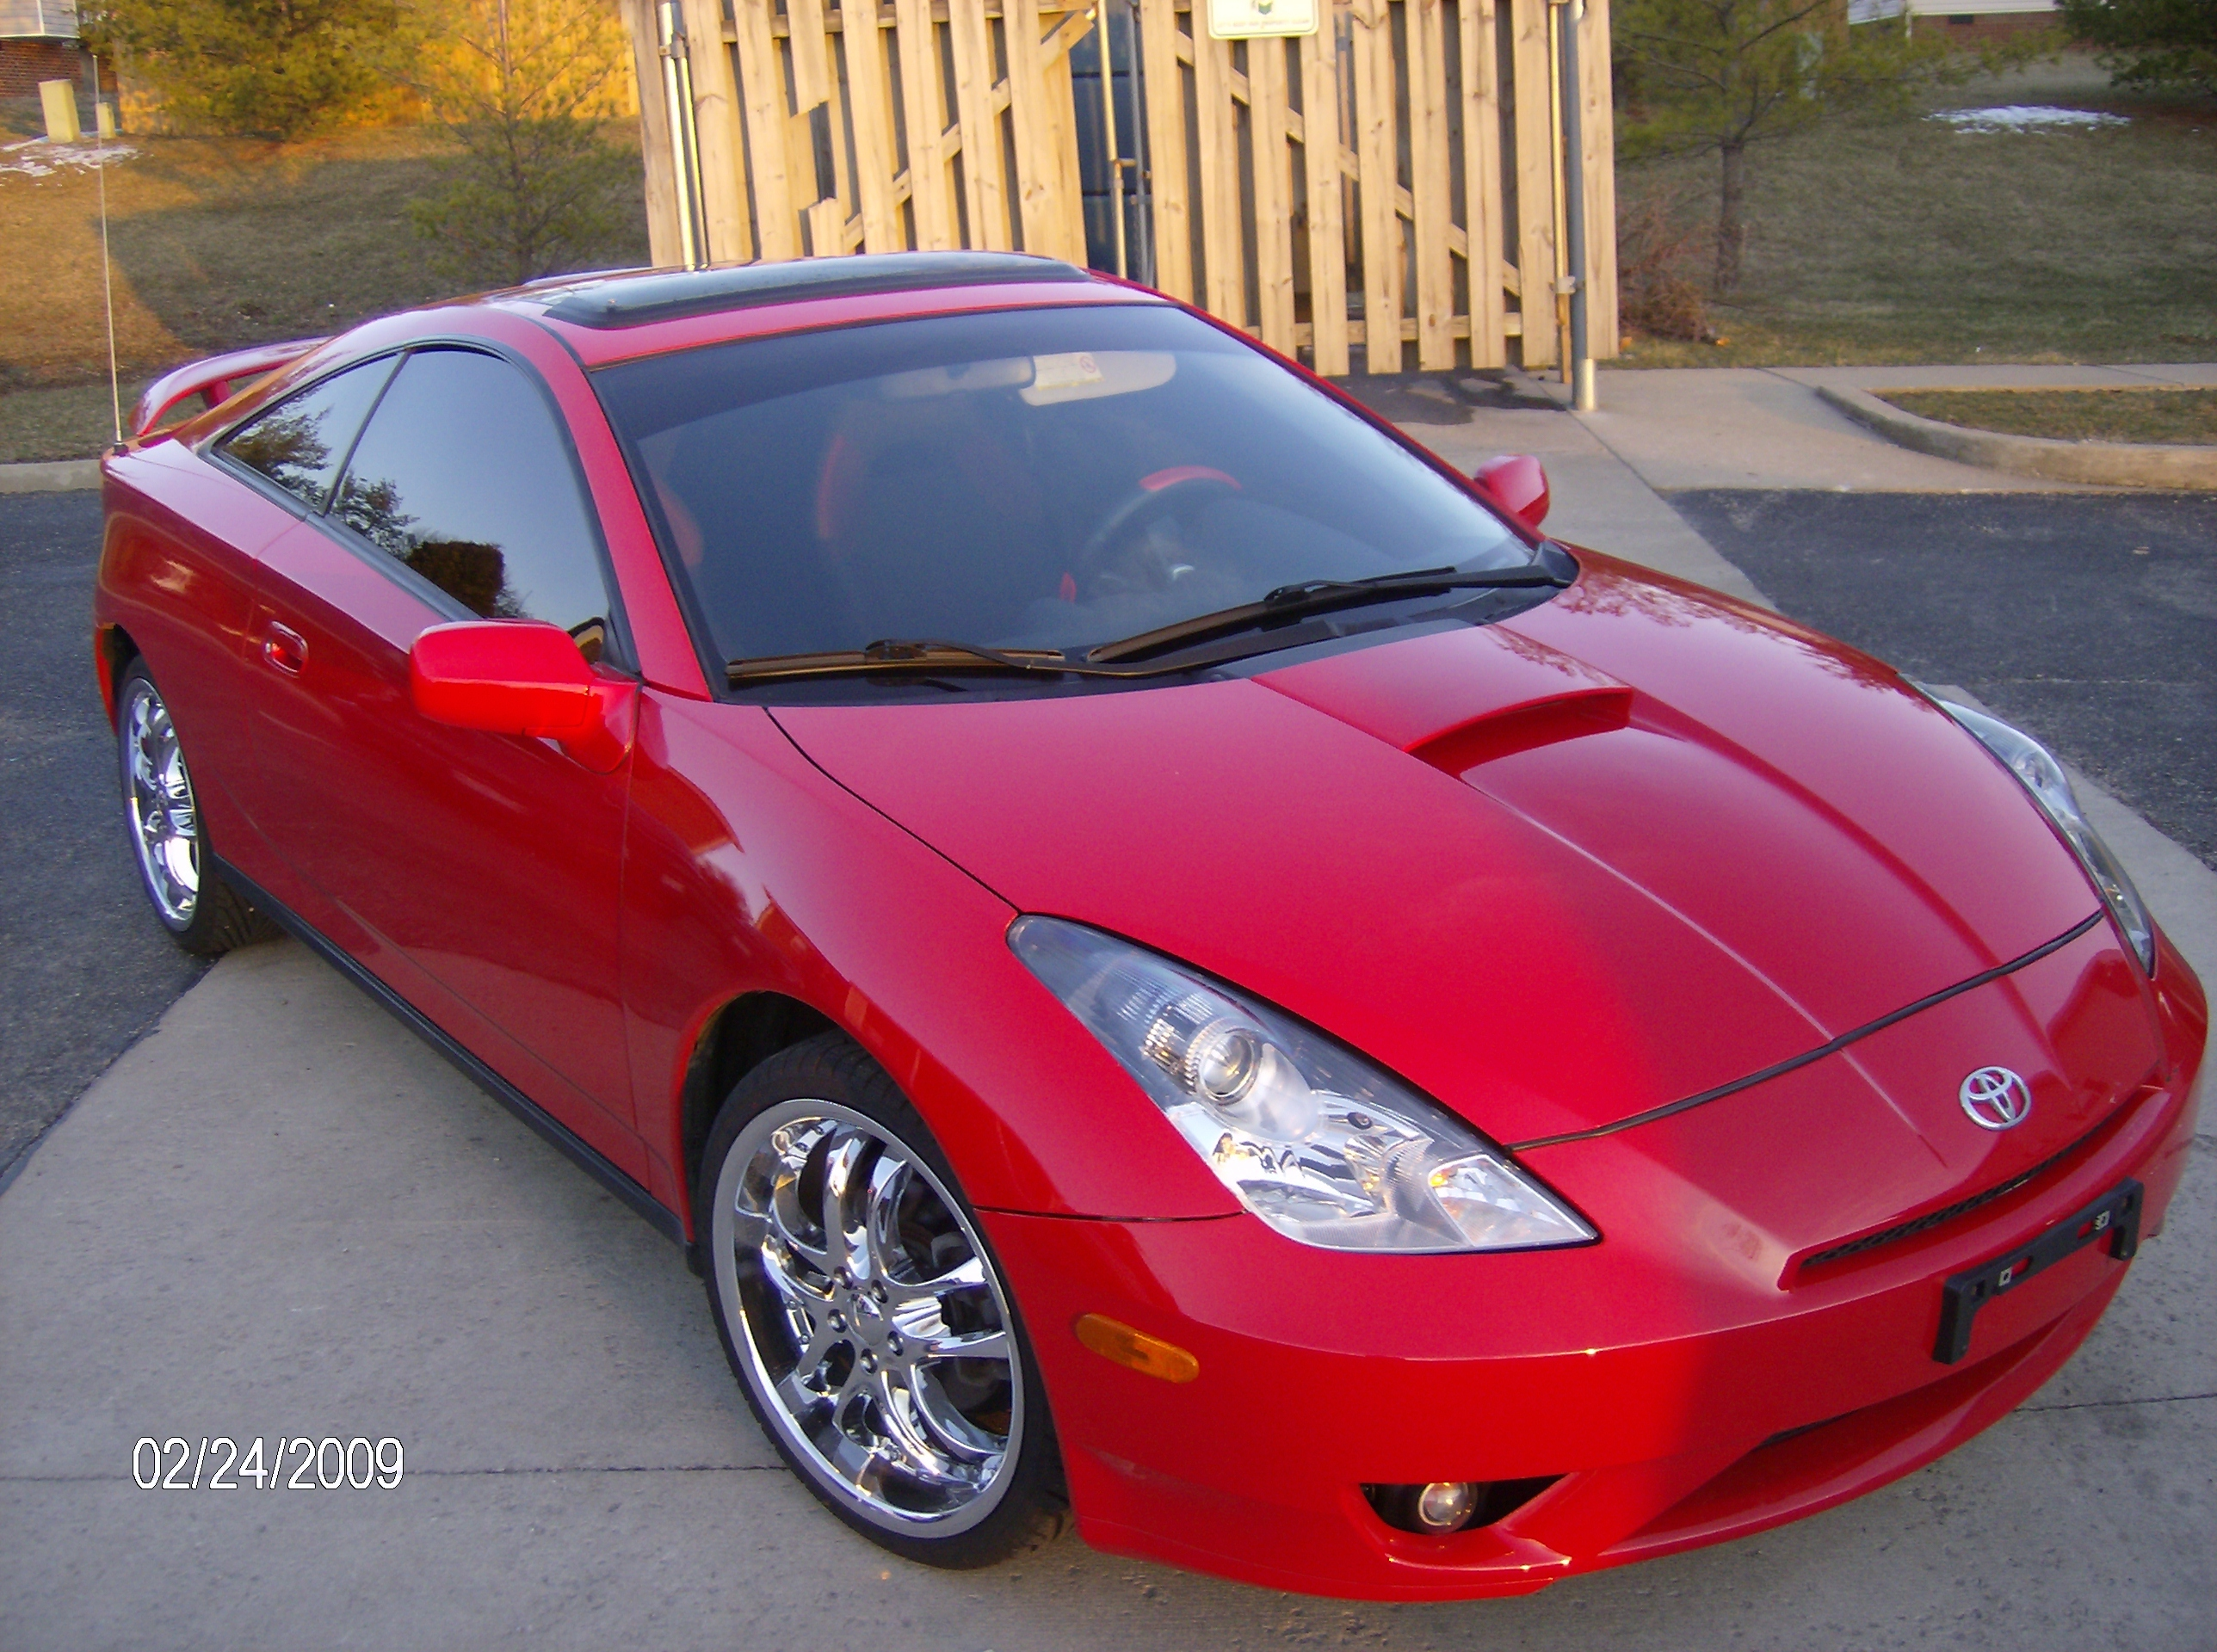 davidhelo 2003 toyota celica specs photos modification. Black Bedroom Furniture Sets. Home Design Ideas